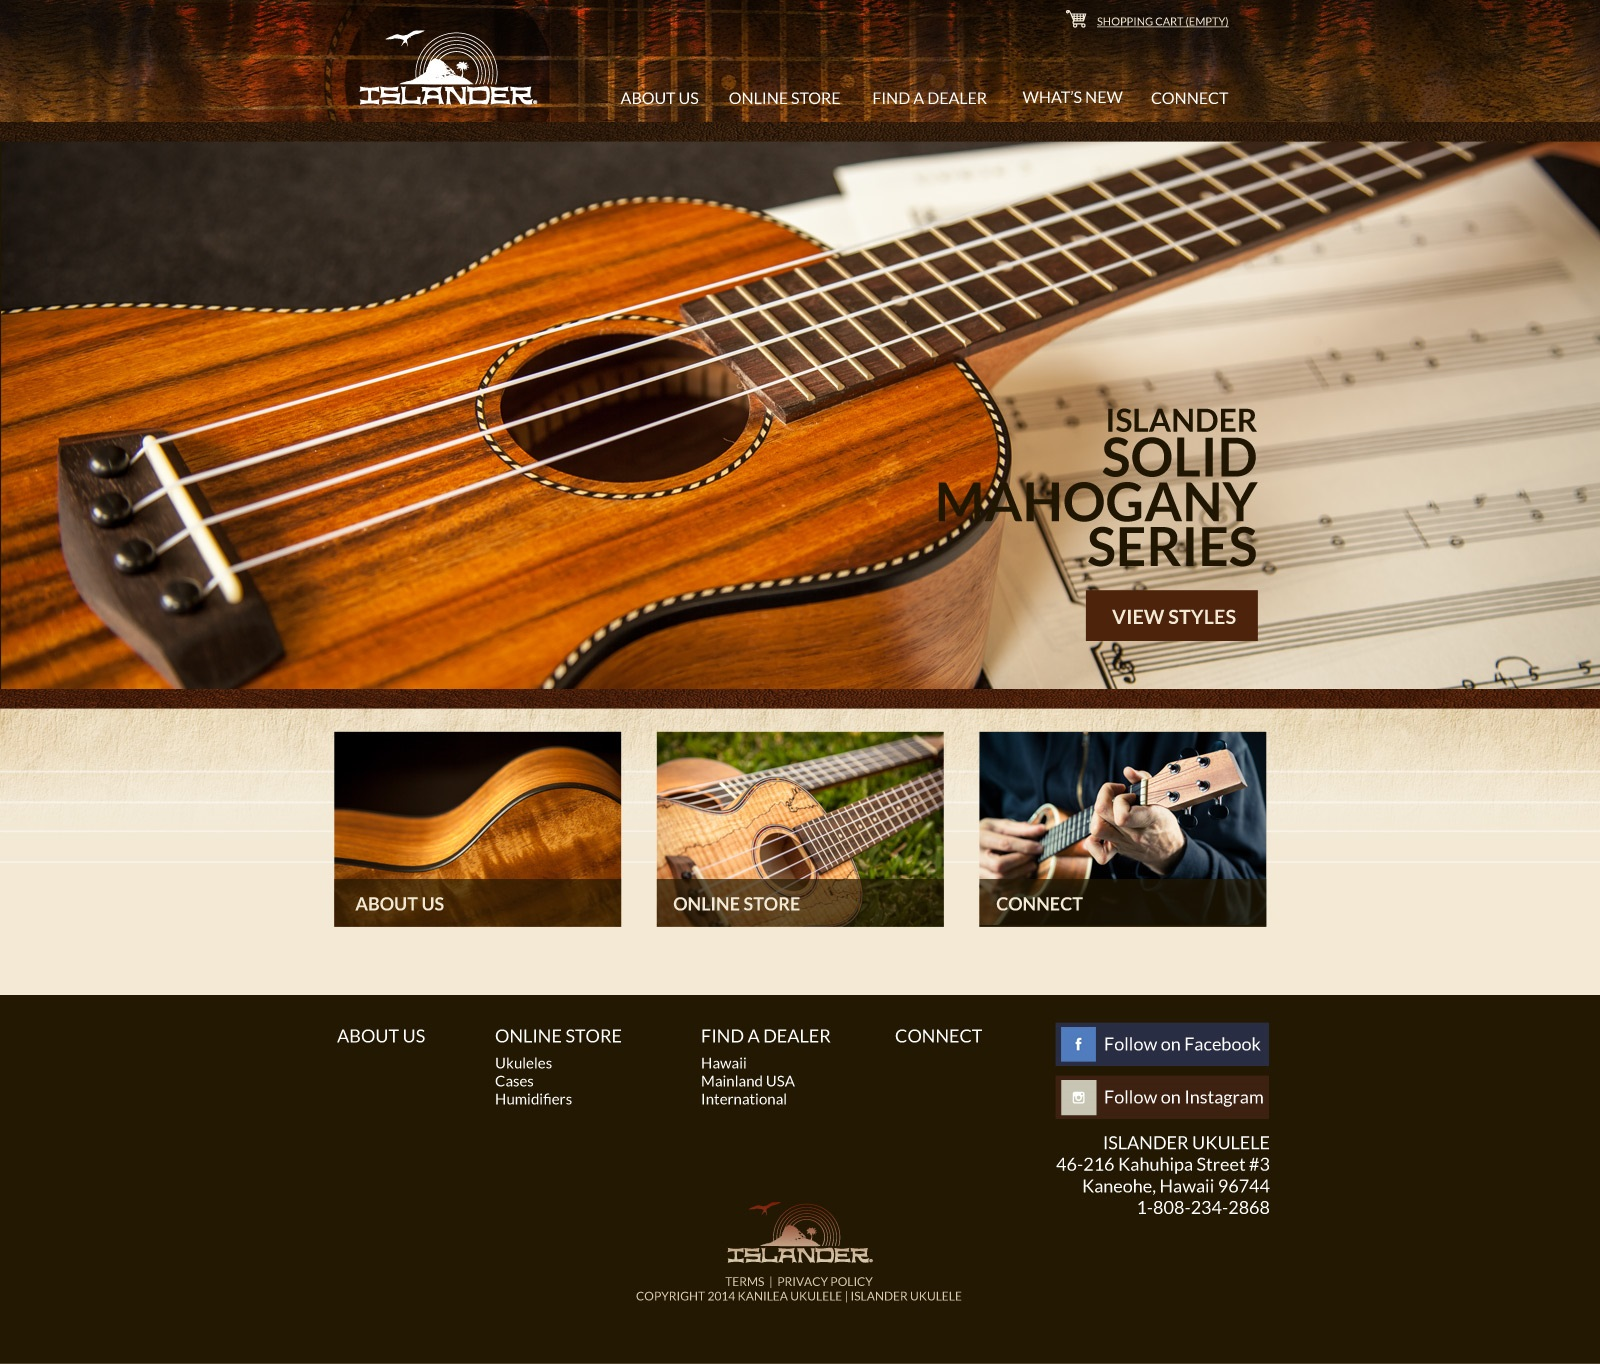 Islander Ukulele, Ukulele, web design, web site, home page, featured image